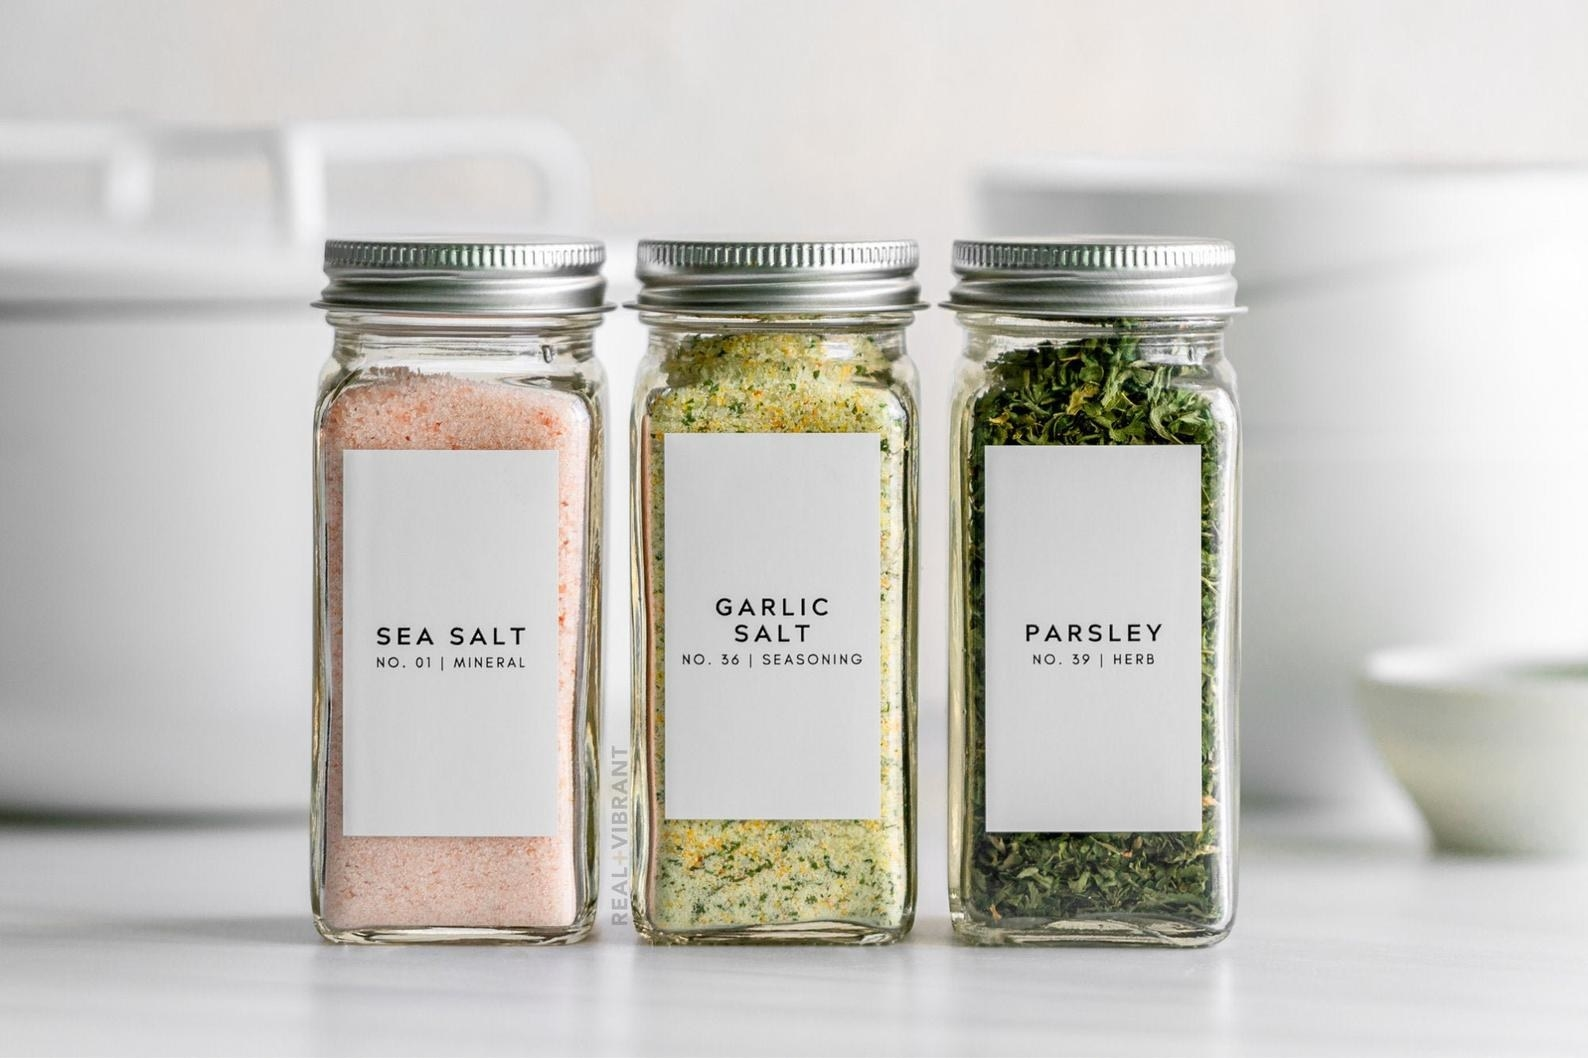 the spice jars with sea salt, garlic salt, and parsley labels